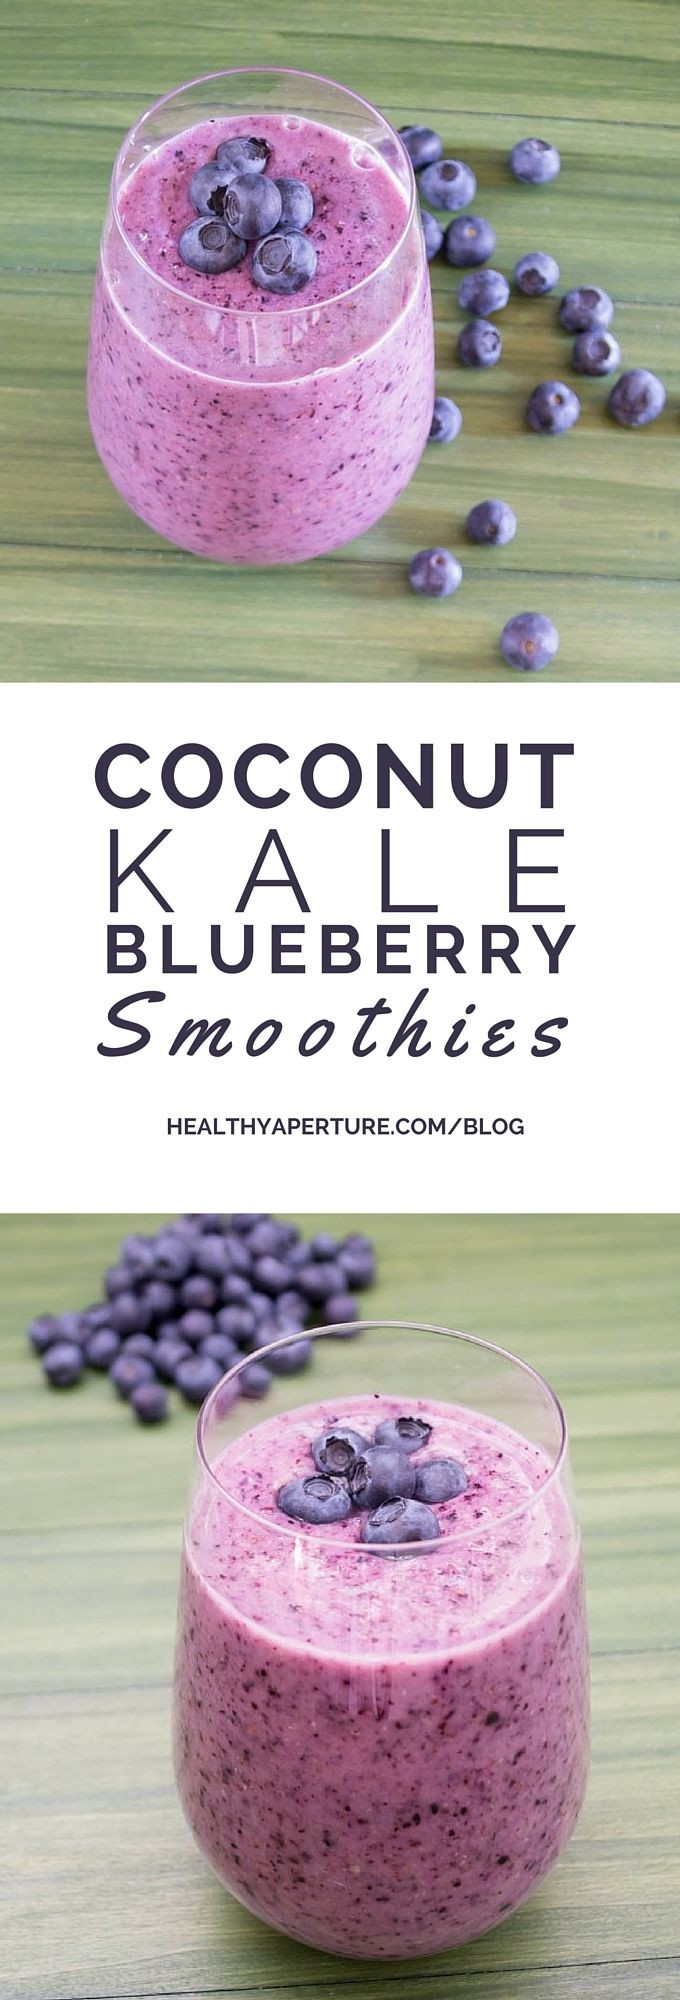 This Coconut, Kale & Blueberry Smoothie is creamy and delicious.